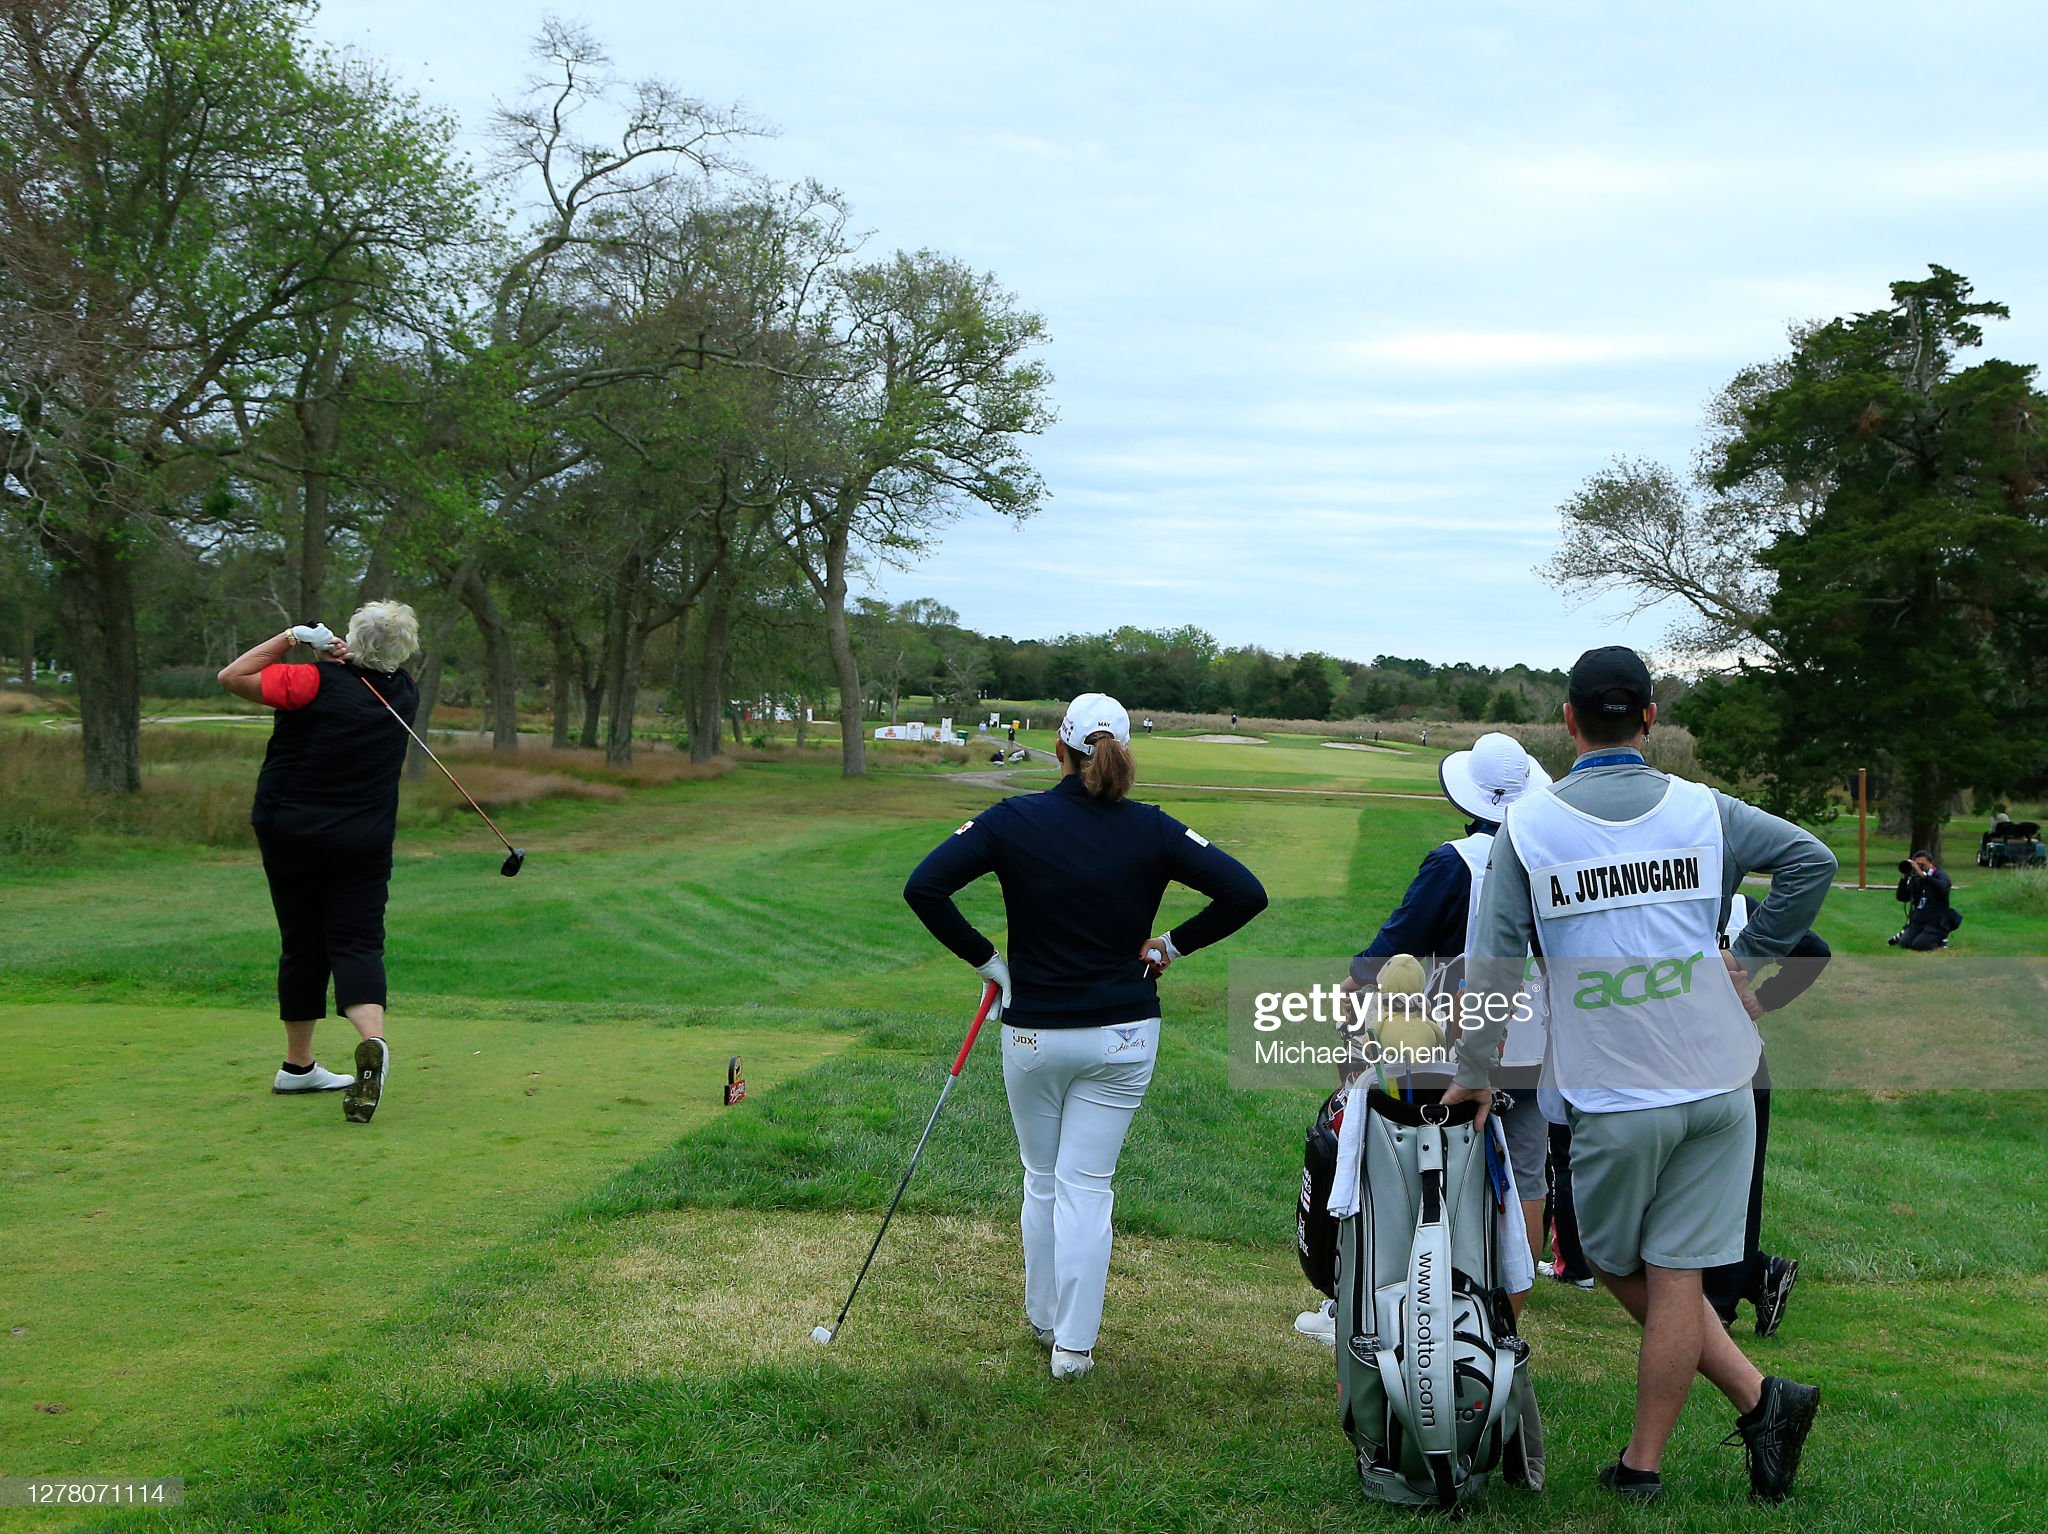 https://media.gettyimages.com/photos/dame-laura-davies-of-england-hits-her-drive-on-the-eighth-hole-during-picture-id1278071114?s=2048x2048